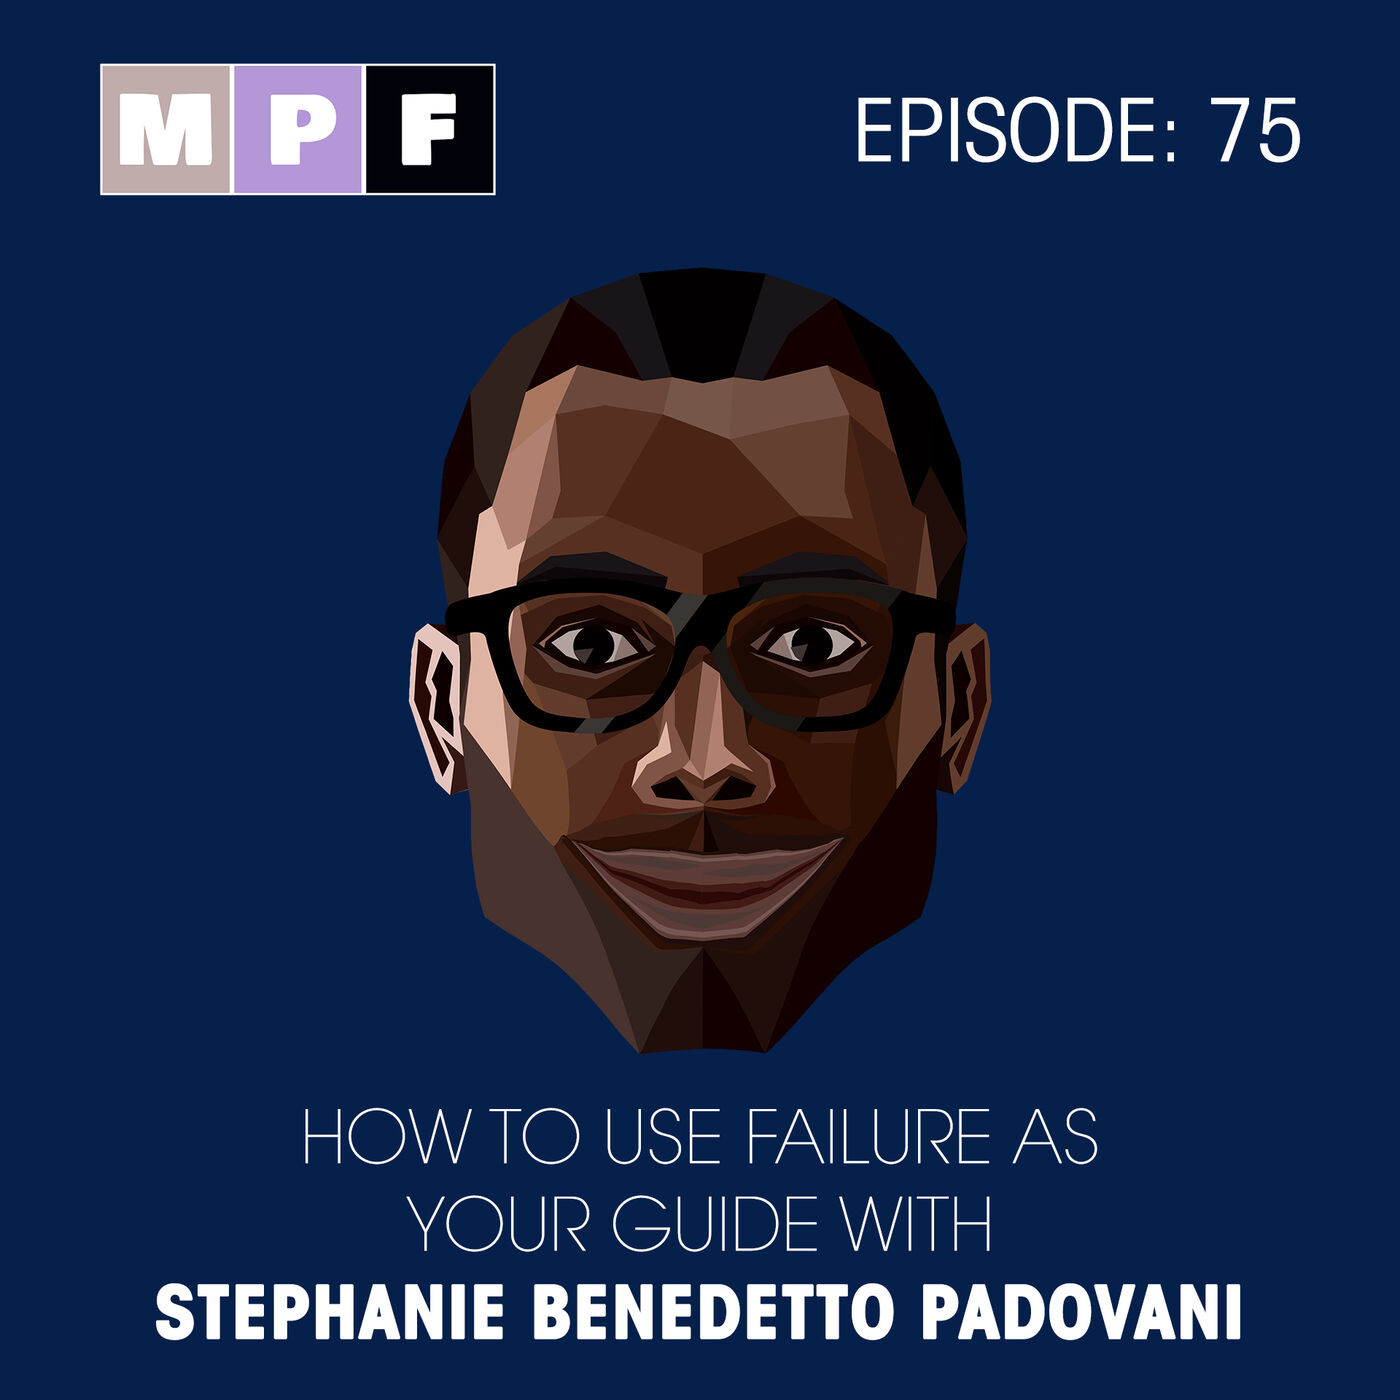 How To Use Failure As Your Guide with Stephanie Benedetto Padovani